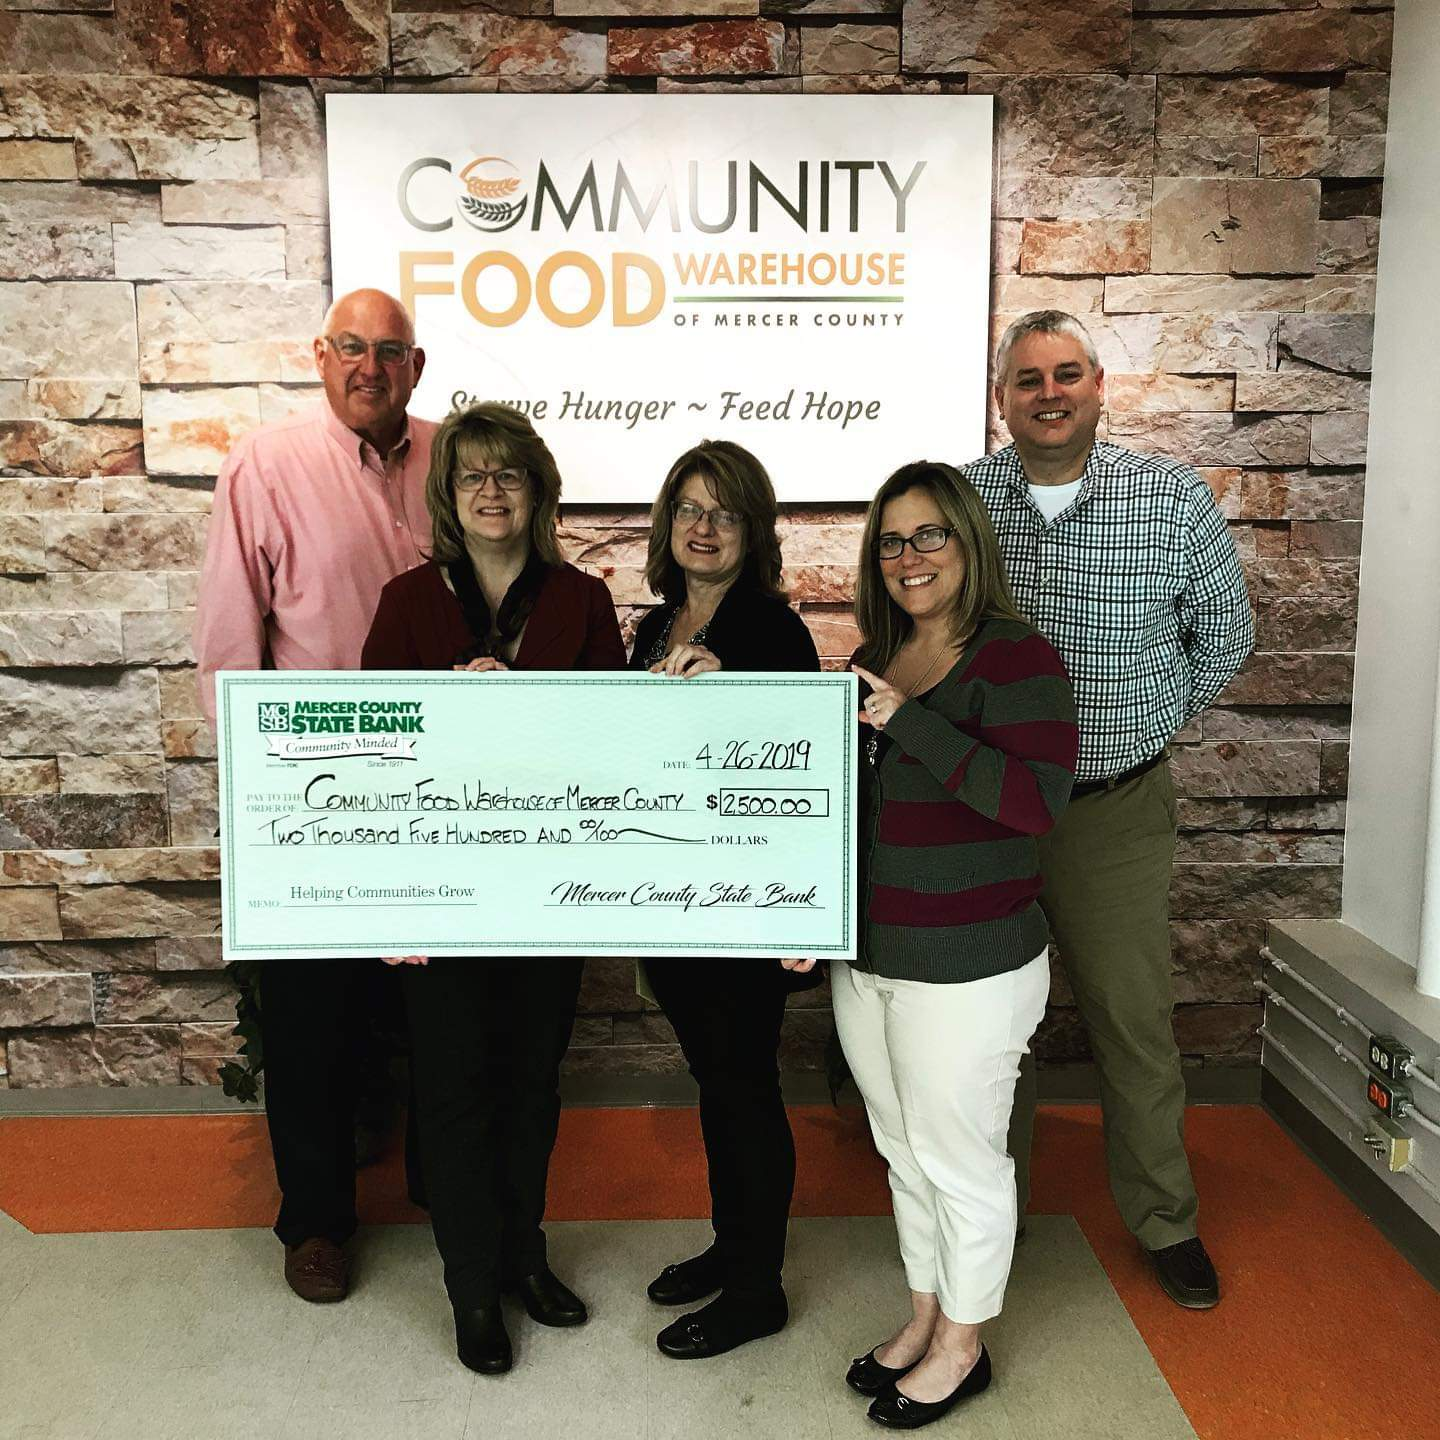 Community Food Warehouse Check Presentation